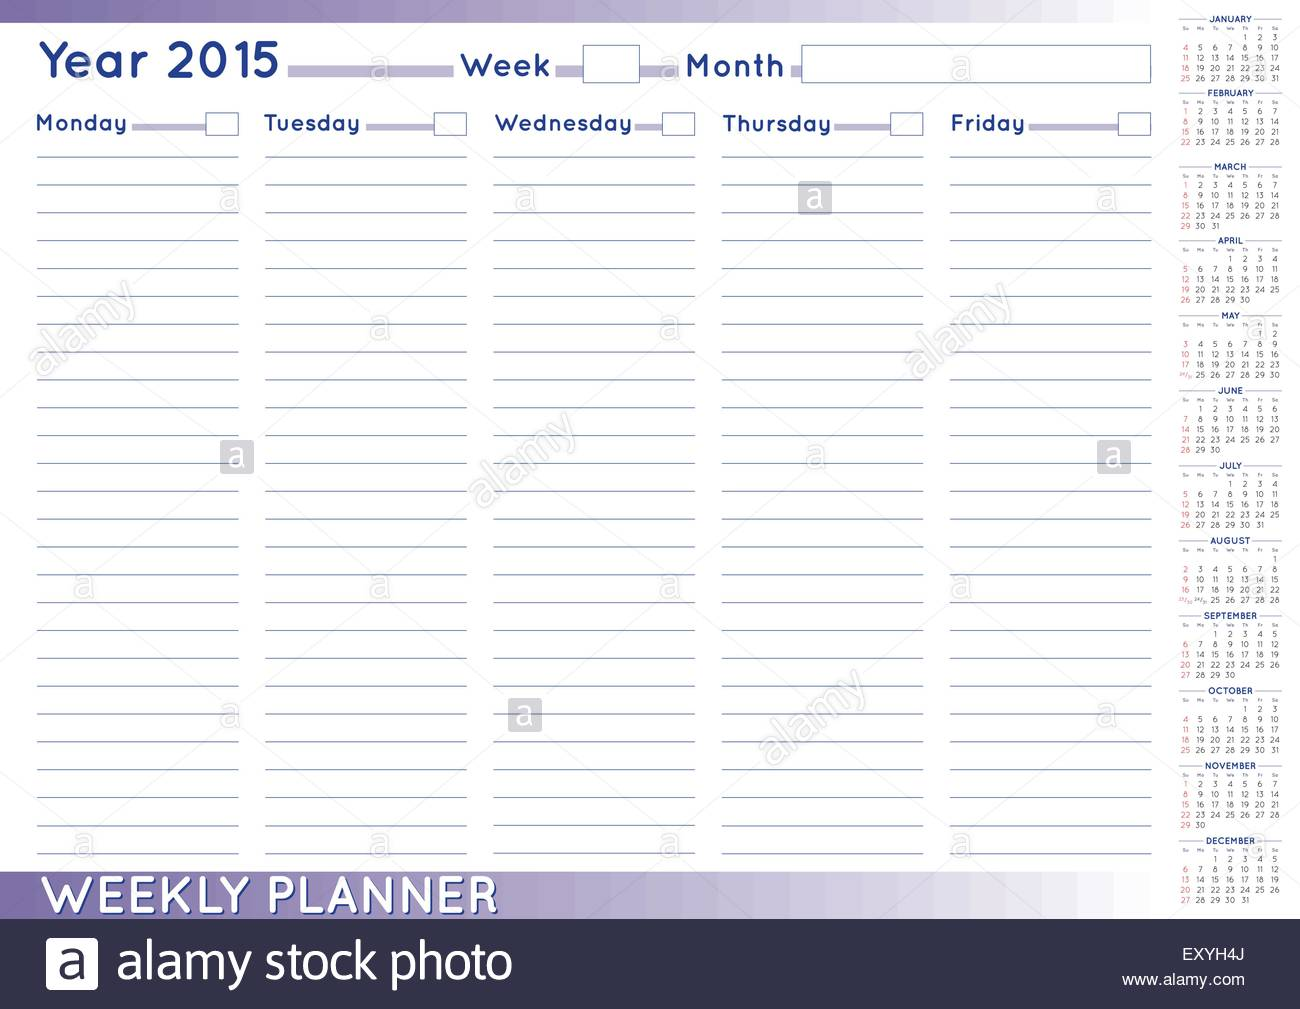 2015 weekly planner or scheduler with a 2015 calendar size a 3 you can put day and week numbers and month names at your own